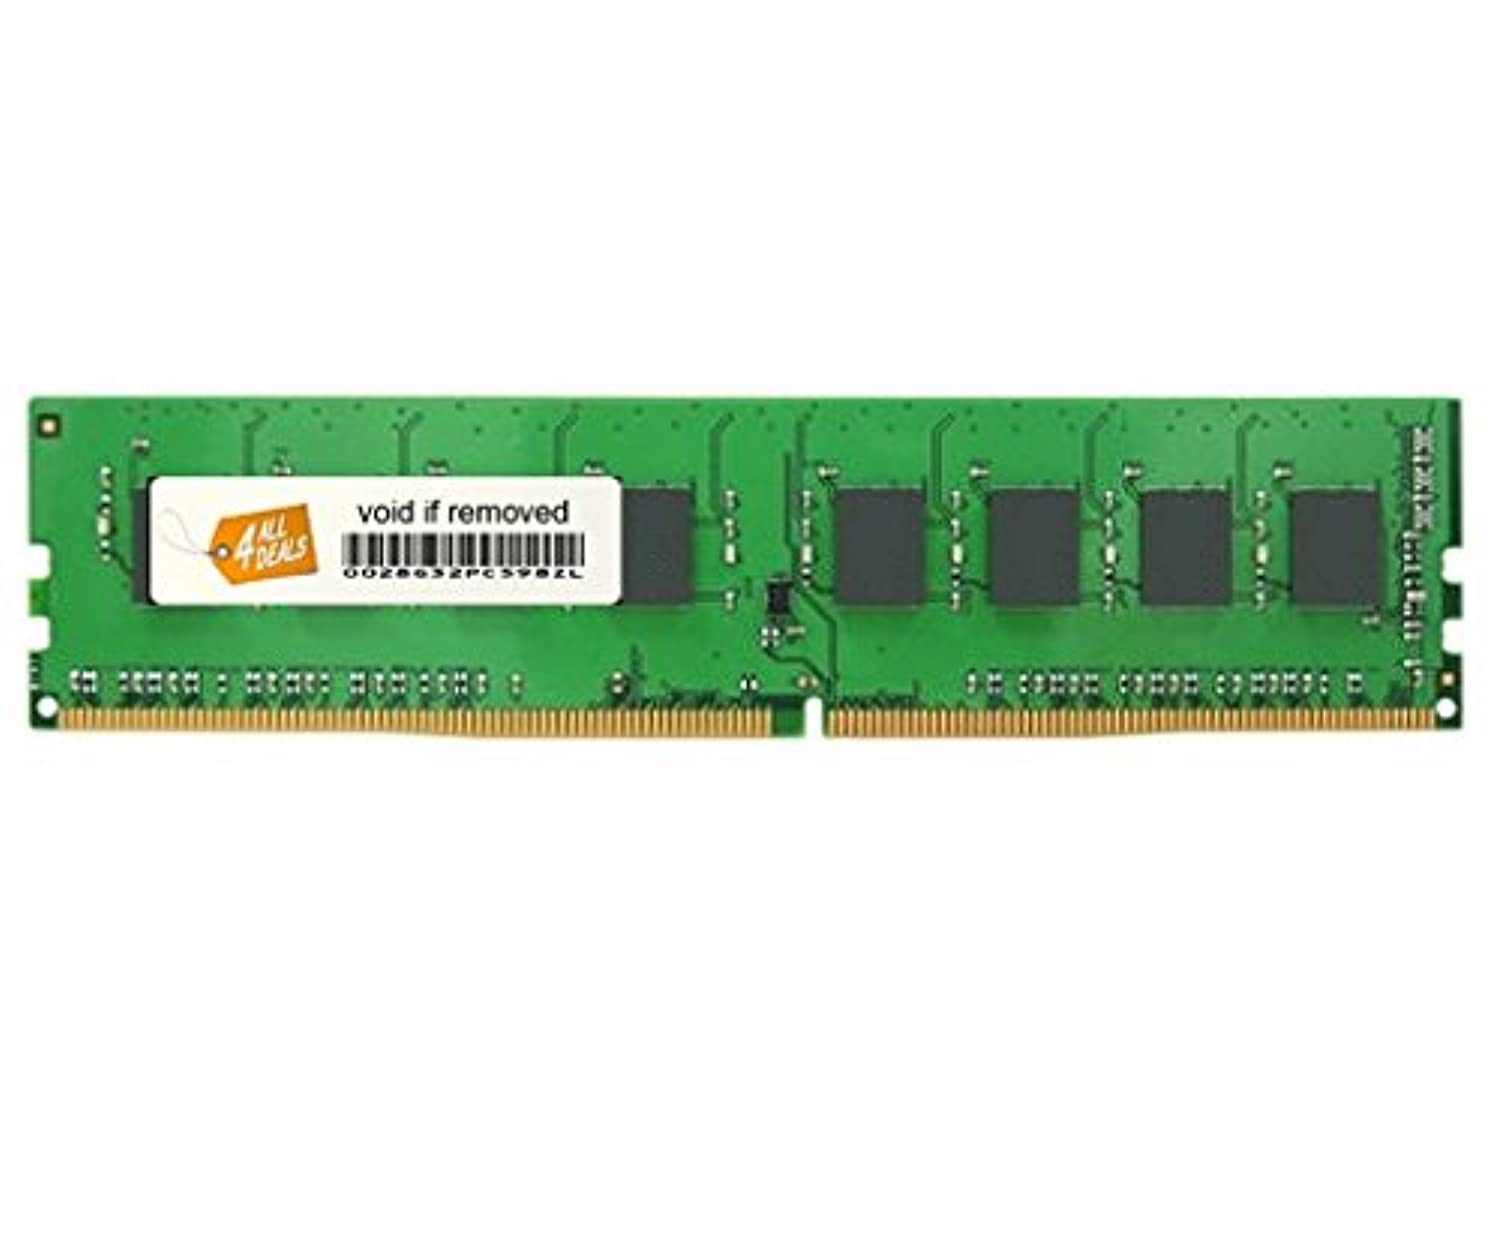 8GB DDR4-2133 (PC4-17000) Memory RAM Upgrade for the Dell Poweredge T330